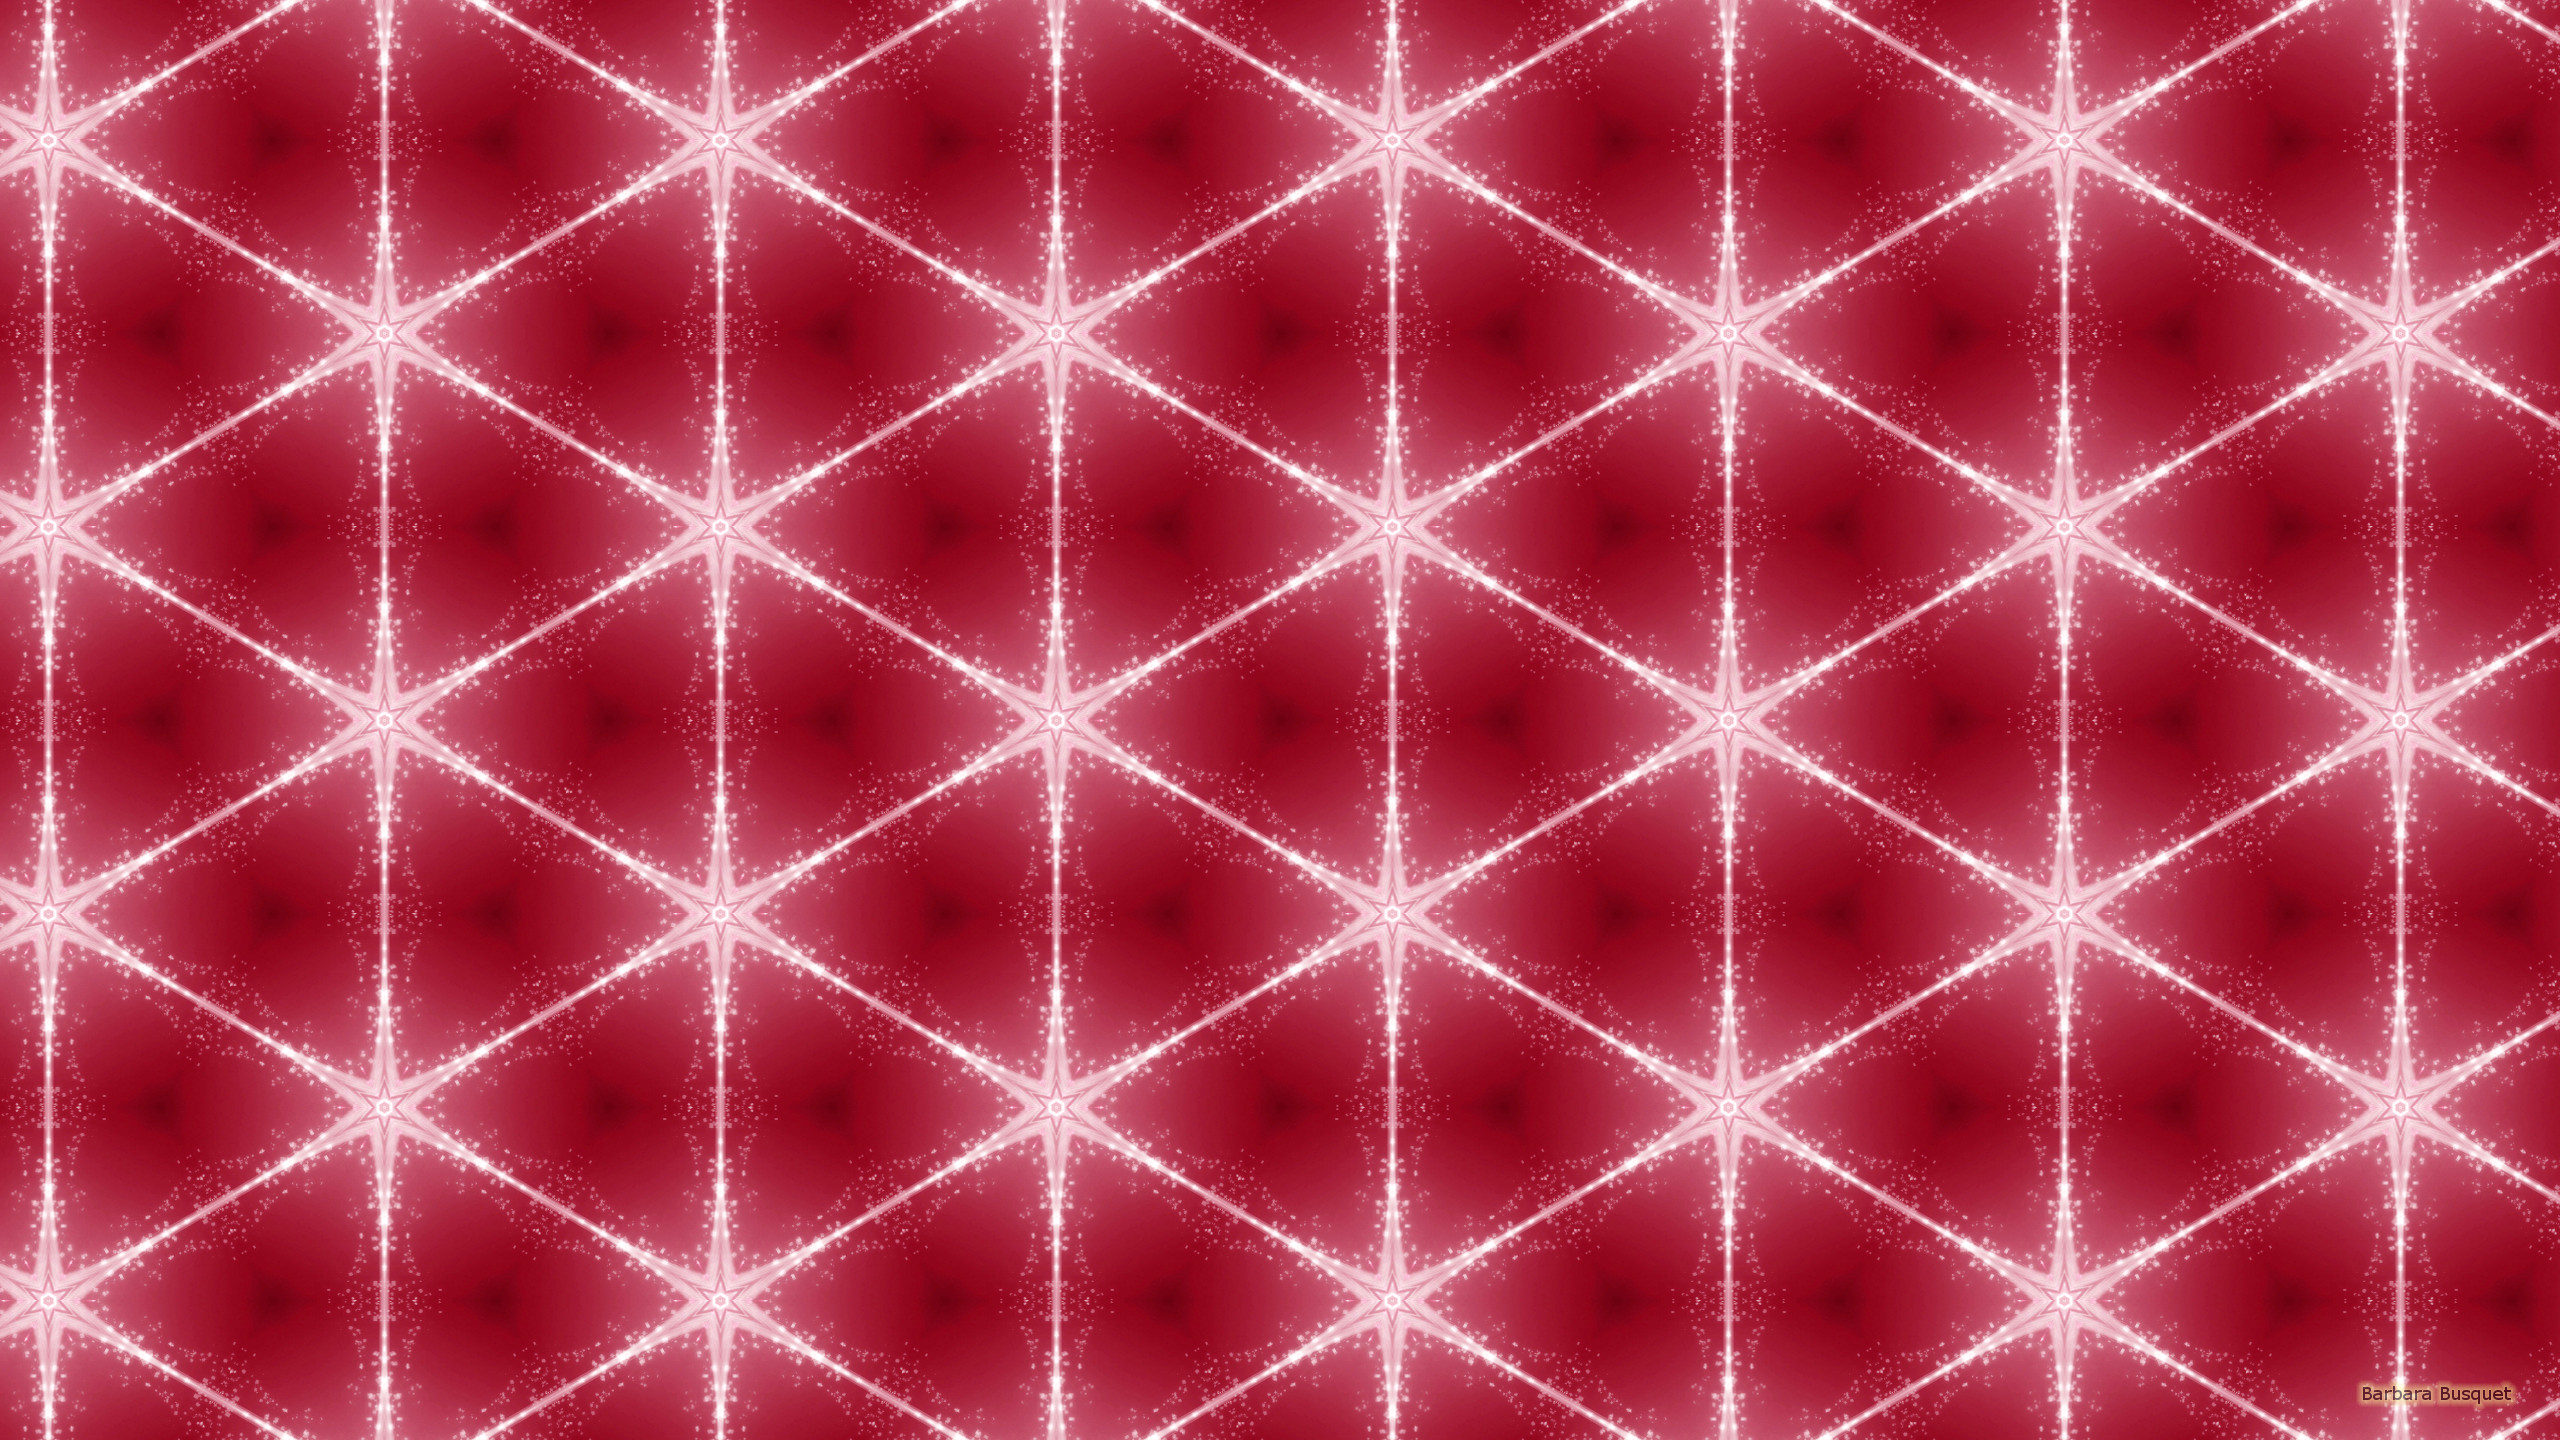 white stars on pink background - barbaras hd wallpapers